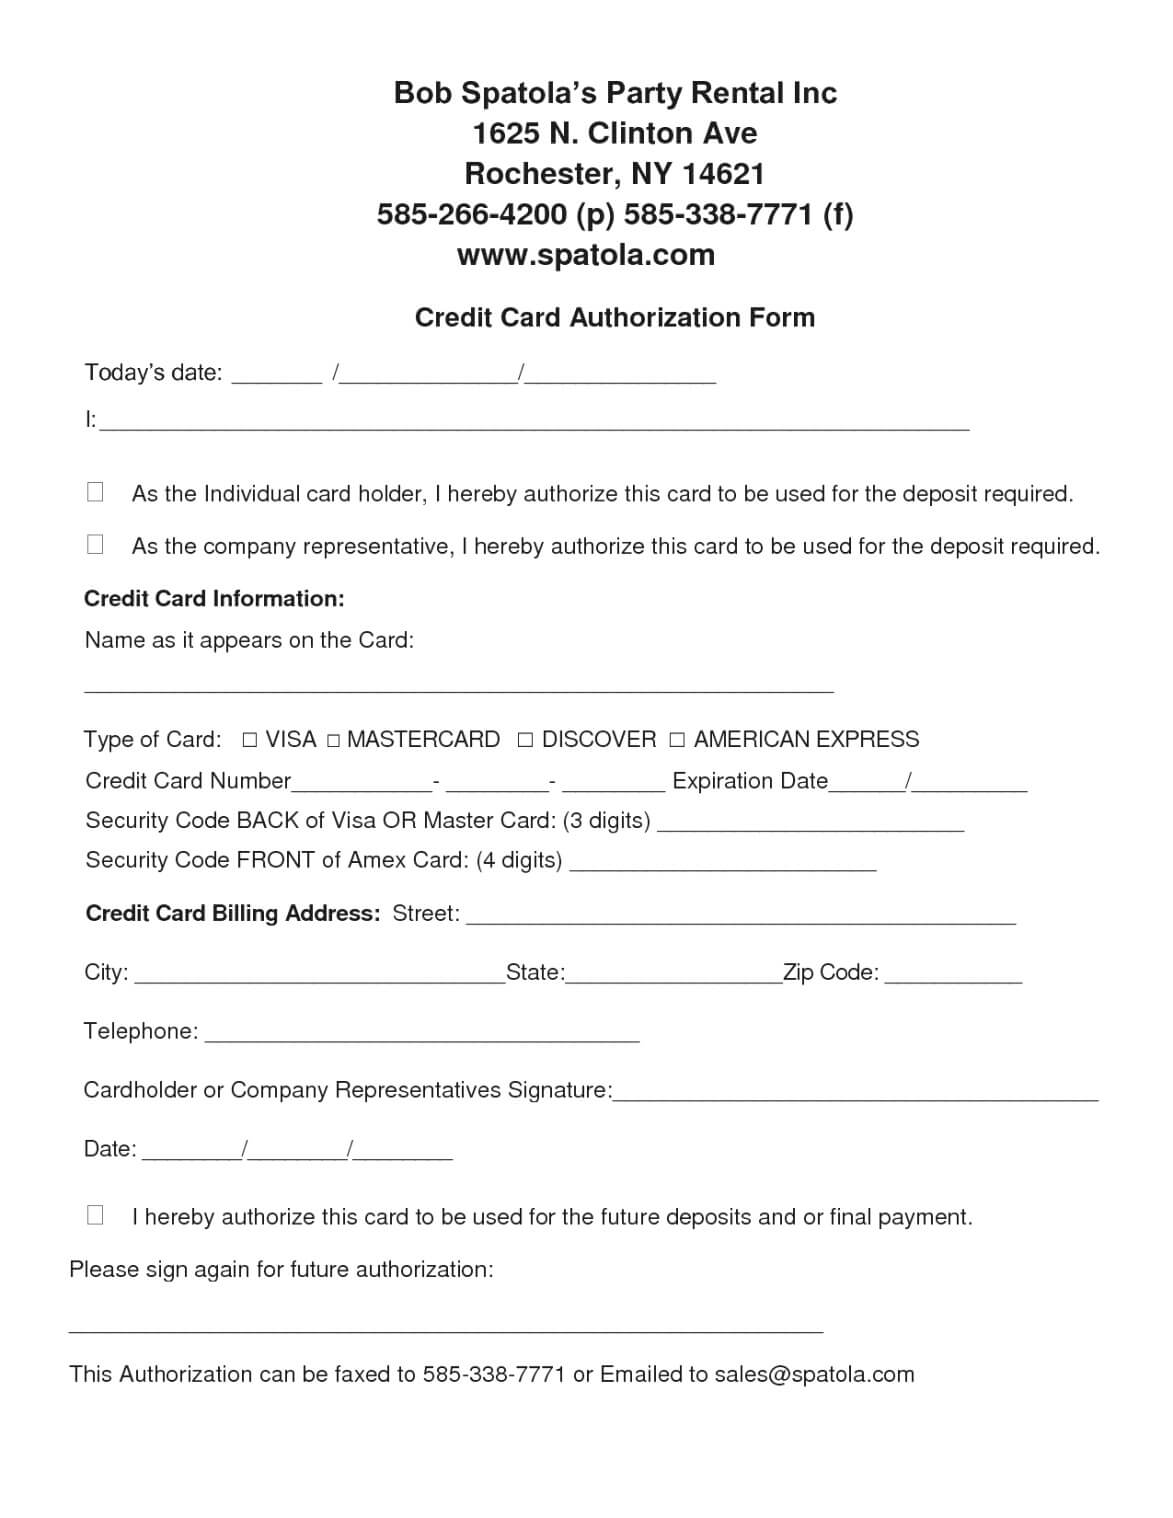 Authorization Form Template Example Mughals (Free Credit pertaining to Credit Card Authorization Form Template Word